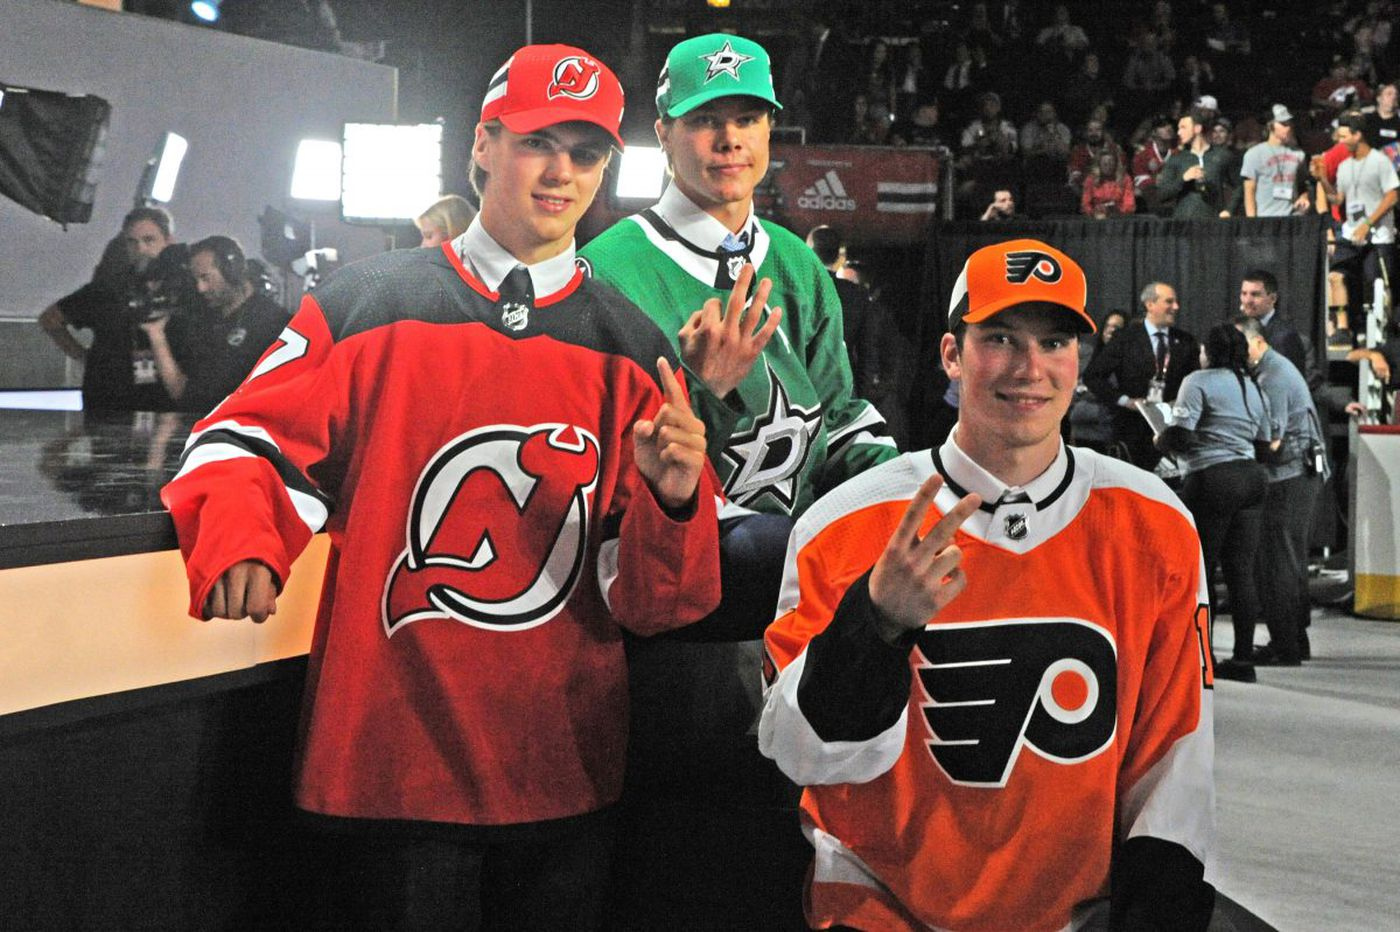 Flyers preview: Top picks Patrick, Hischier, finally face off